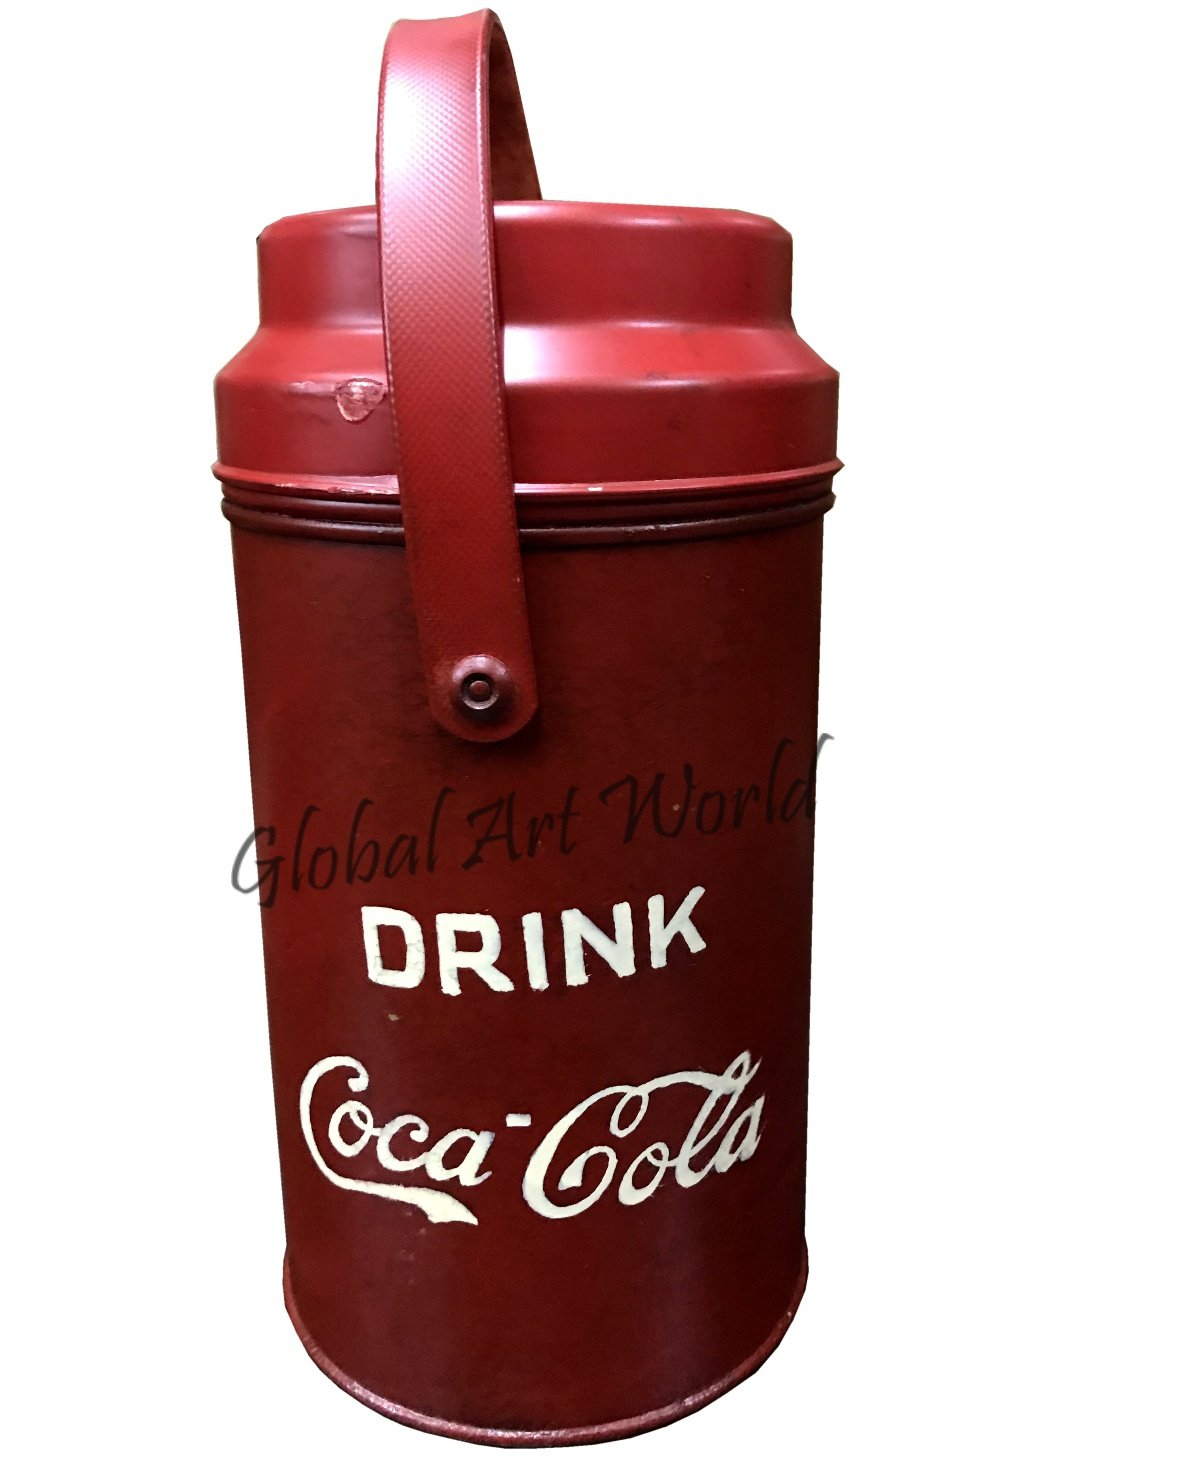 Global Art World Antique Old Collectible Portable Cylindrical Shape Carrier Coca Cola Drinks Metal Bottle Thermos With Logo Embossed HB 0169 by Global Art World (Image #1)